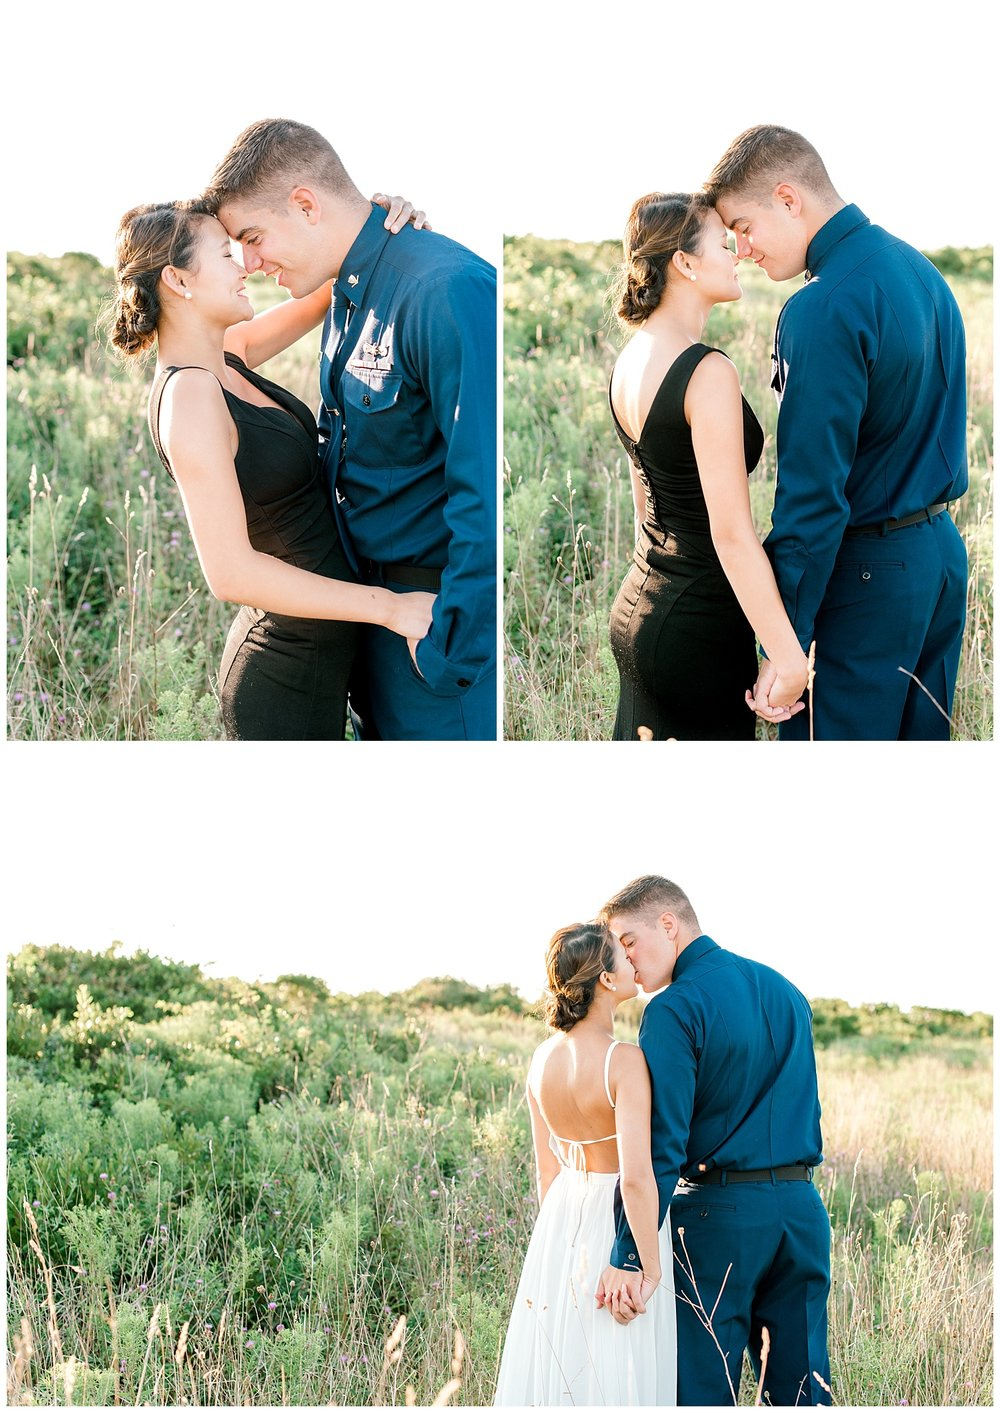 august18-rhode-island-engagement-photography-field-couples-portrait